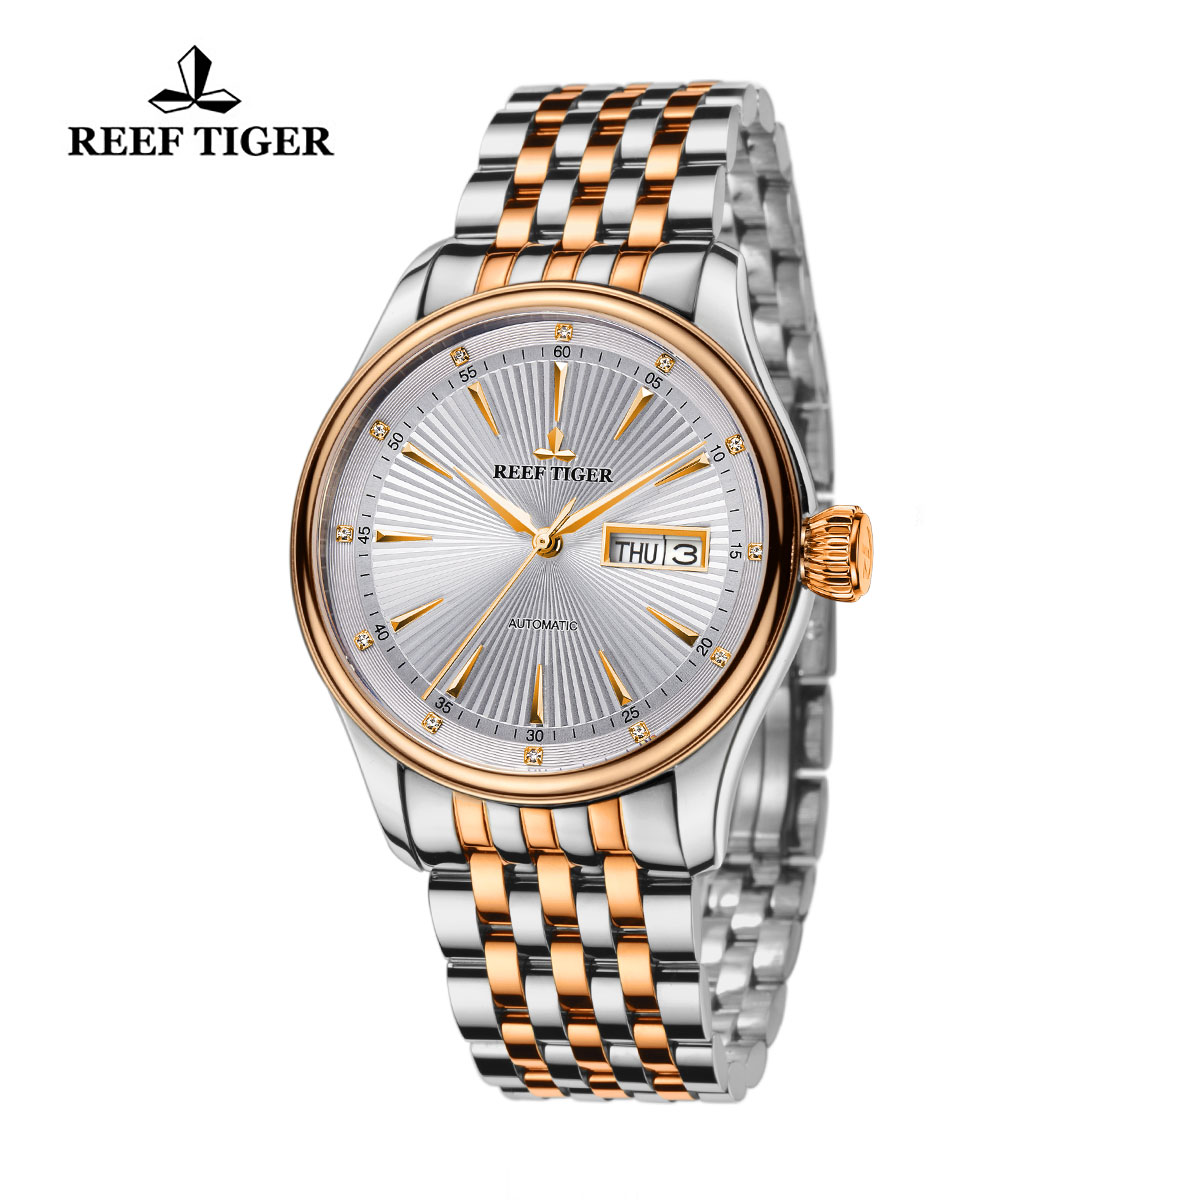 Reef Tiger Heritage II Dress Watch Automatic White Dial Two Tone Case RGA8232-PWT